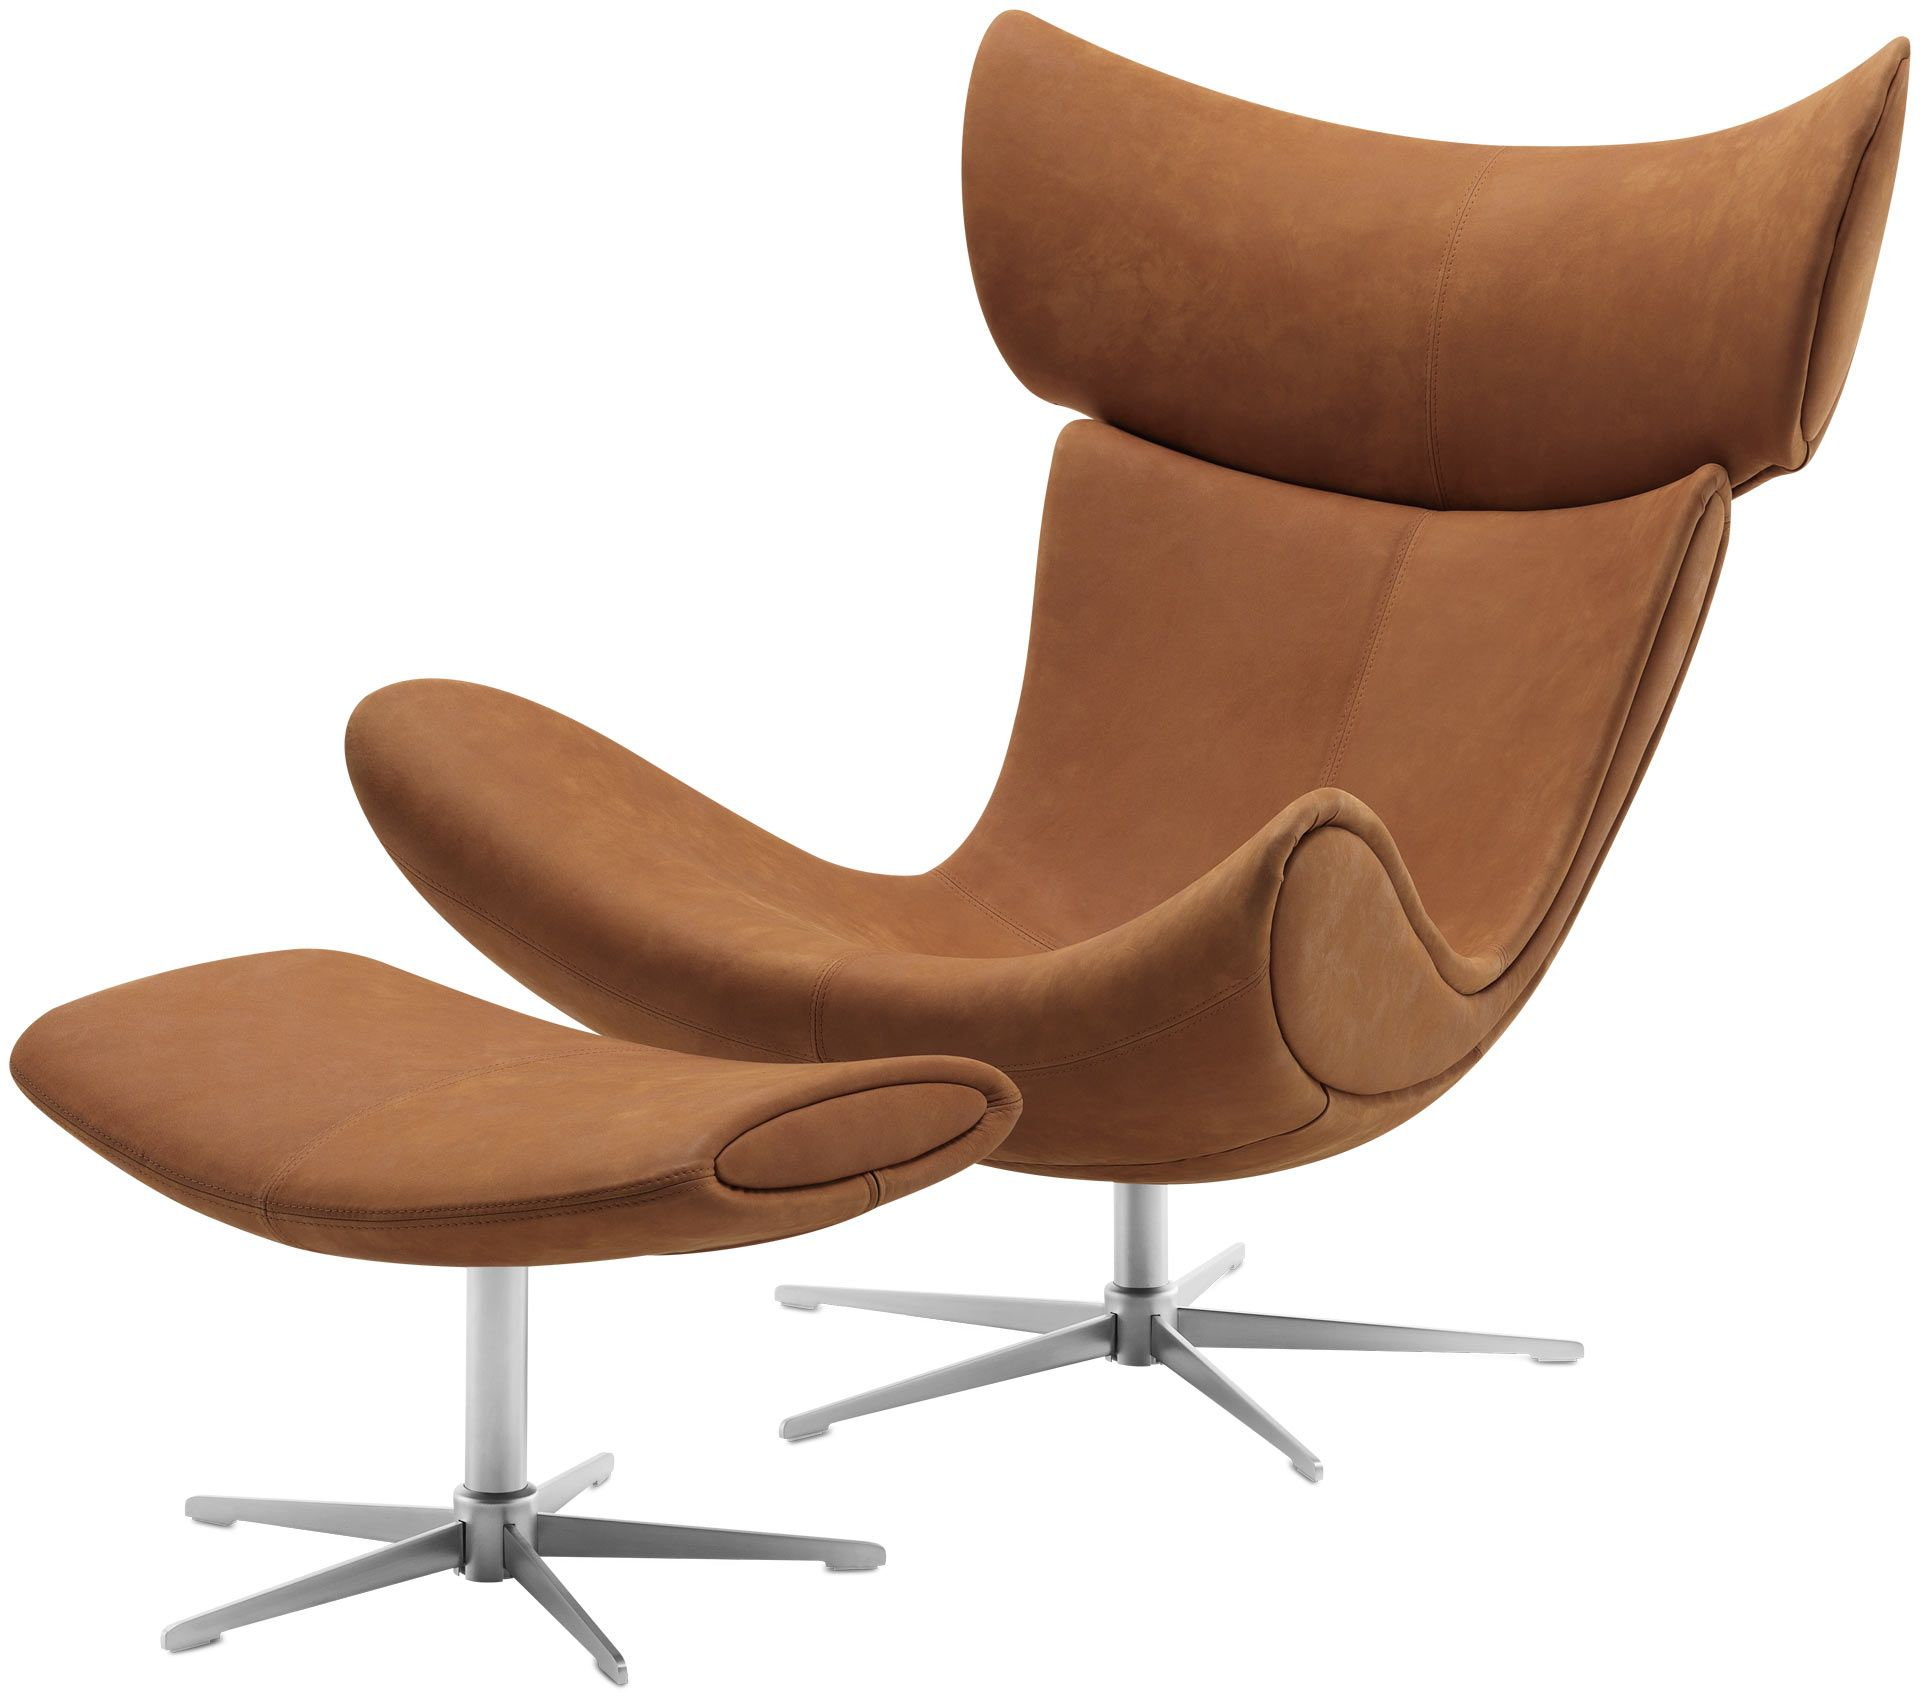 View in gallery Arne Jacobsen's Egg Chair